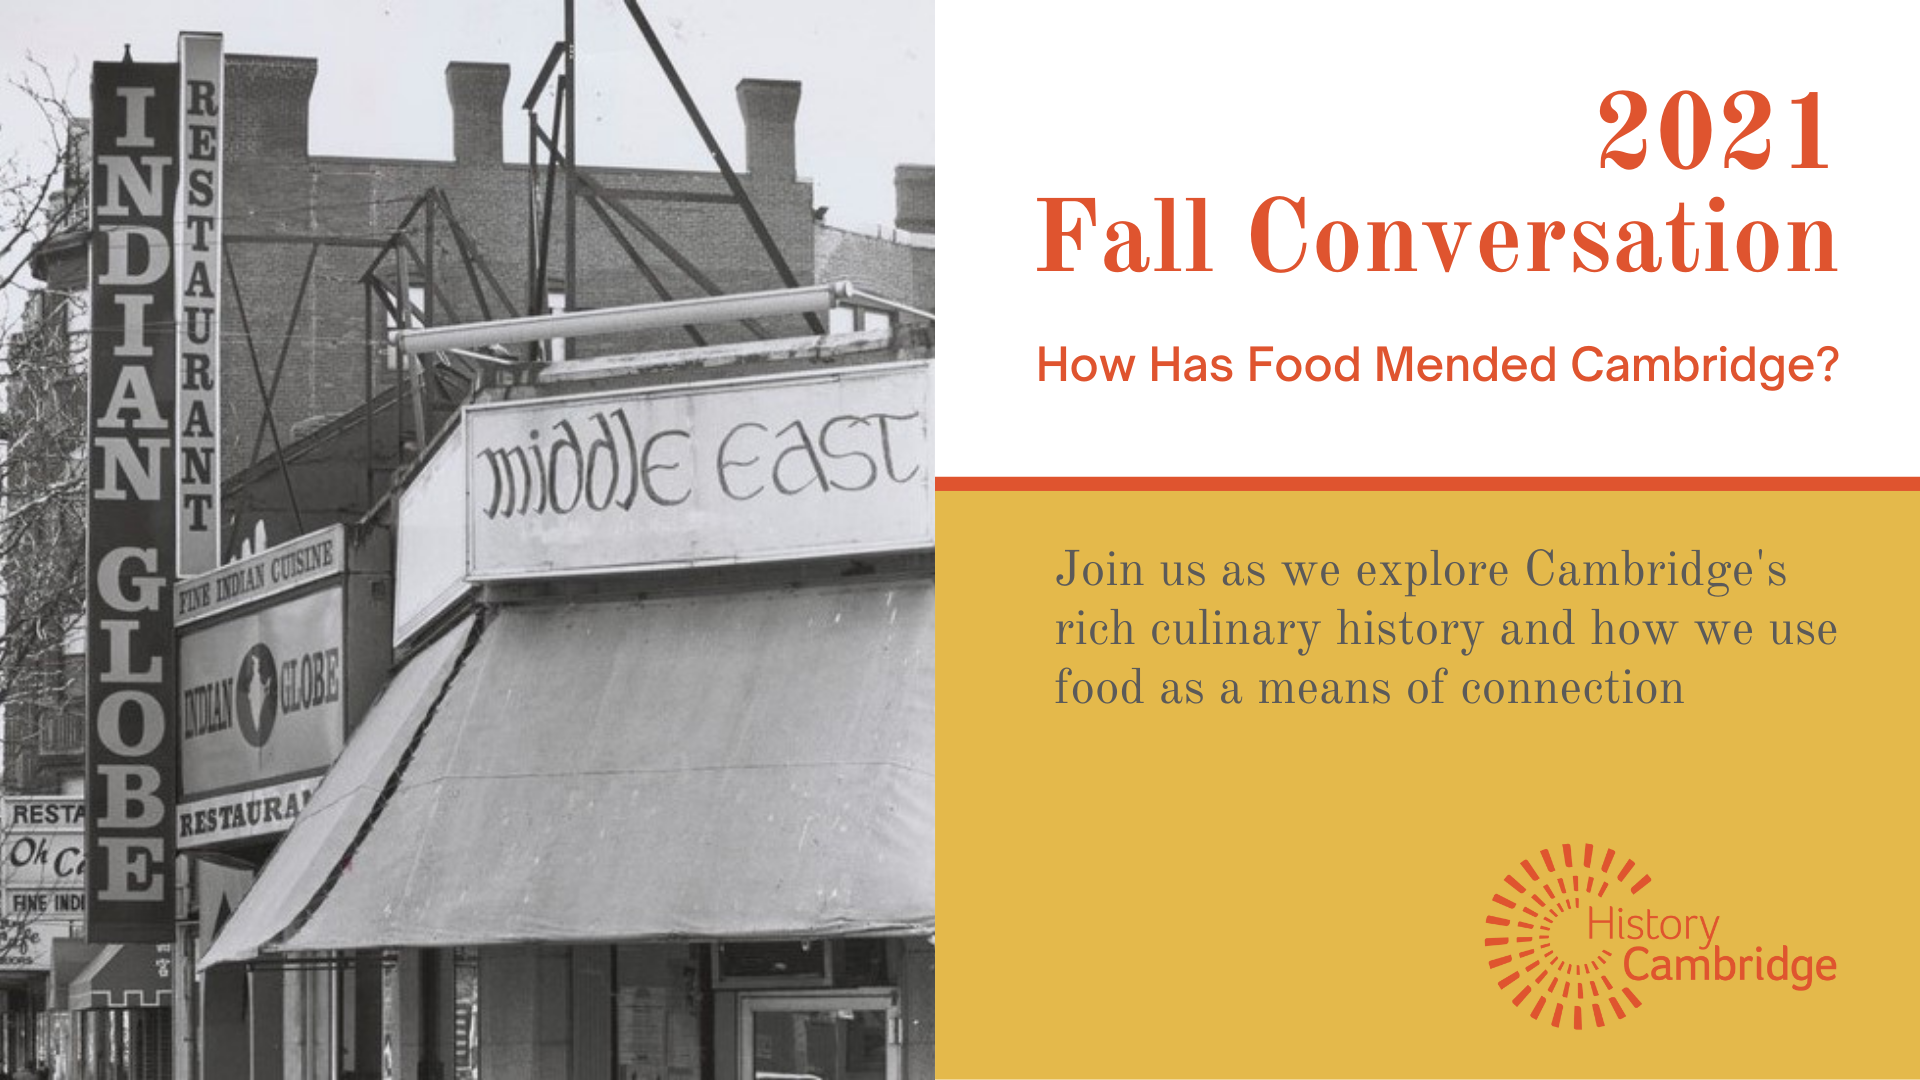 Fall Conversation: How Has Food Mended Cambridge?